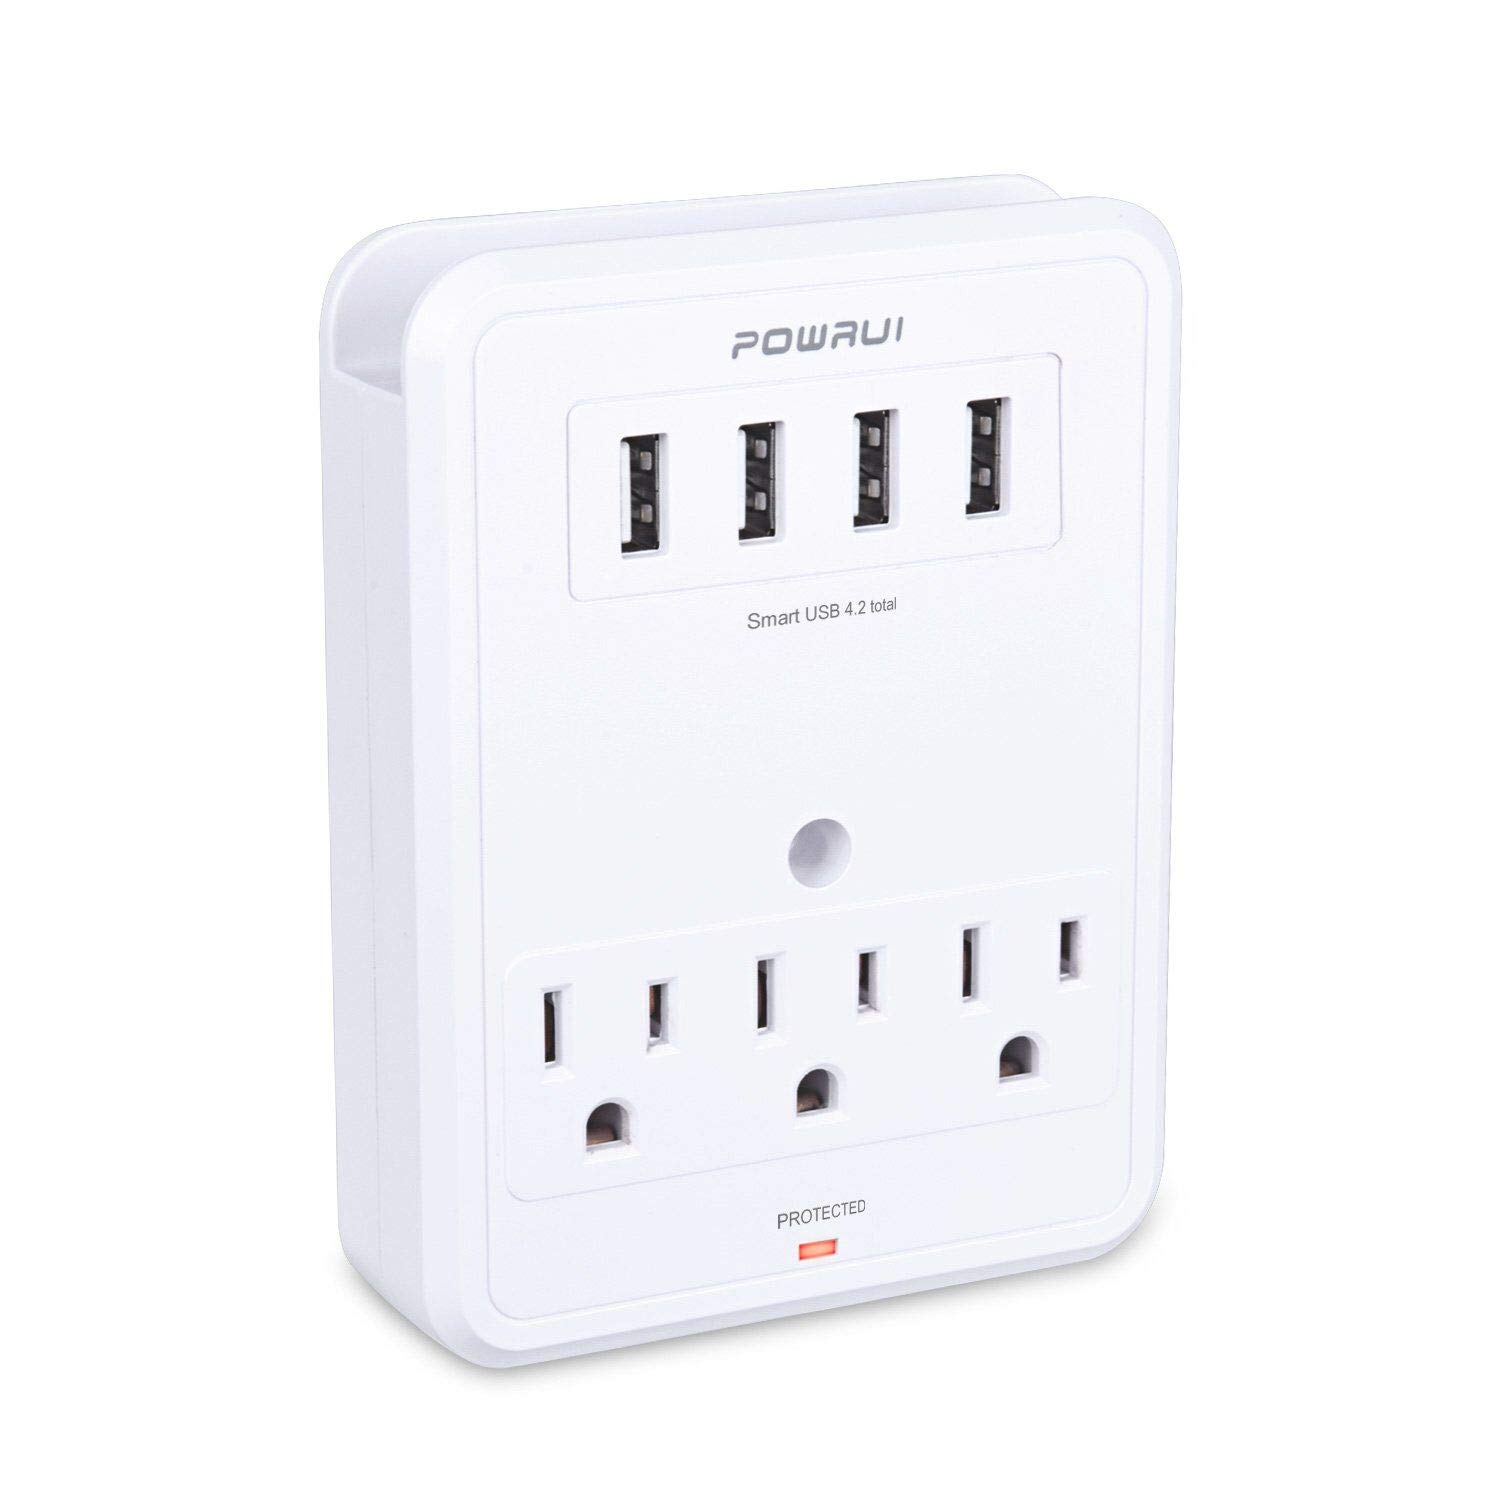 POWRUI Multi Wall Outlet Adapter Surge Protector 1680 Joules with 4-USB Ports Wall Charger, Wall Mount Charging Center 3 Outlet Wall Mount Adapter for Home, School, Office, ETL Certified by POWRUI